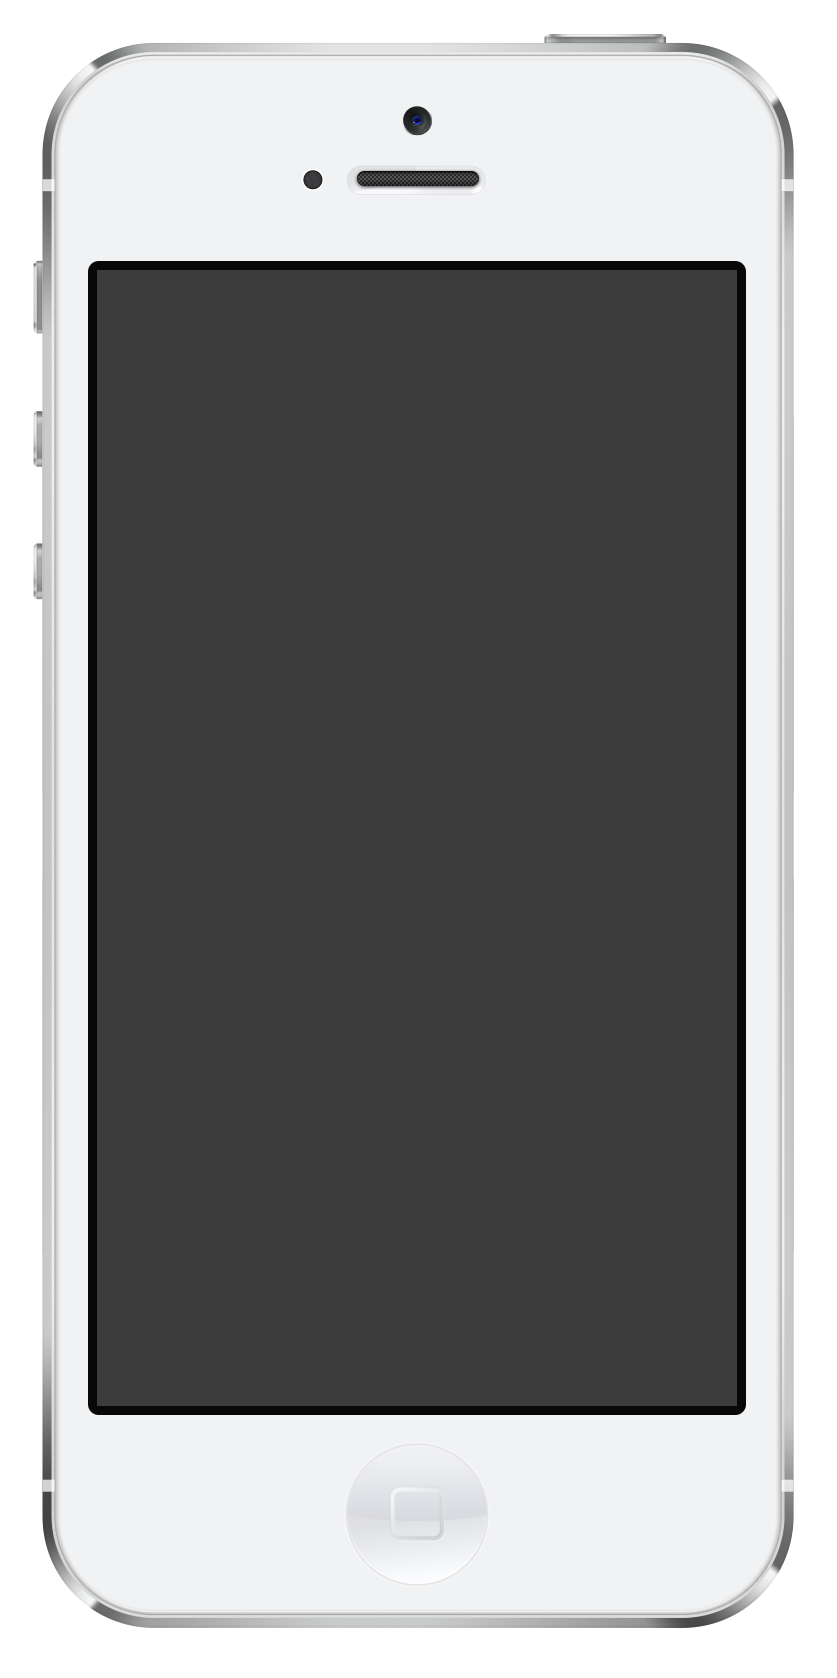 Iphone Apple PNG images free download.